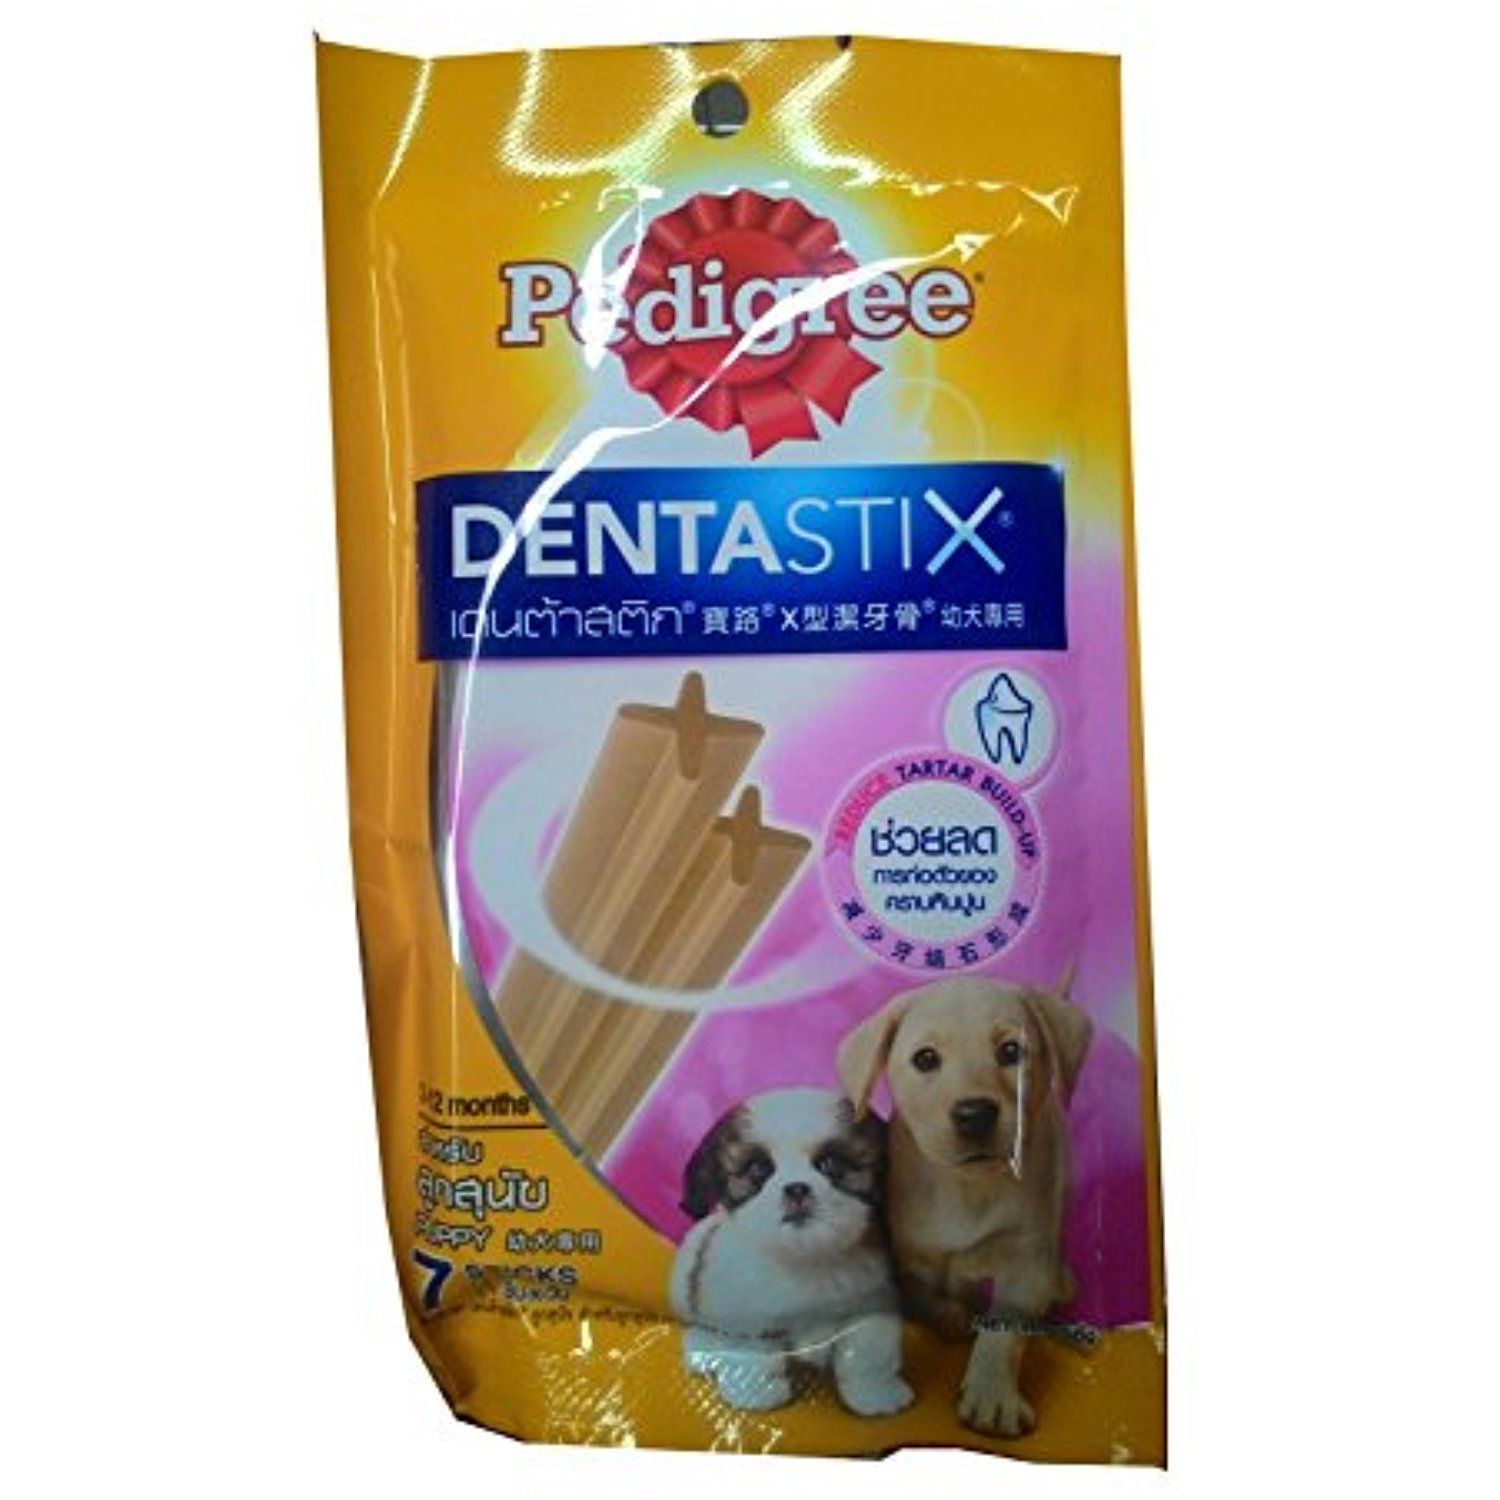 Pedigree Denta Stix Reducetartar Build Up 56g X 3 Puppy Dog You